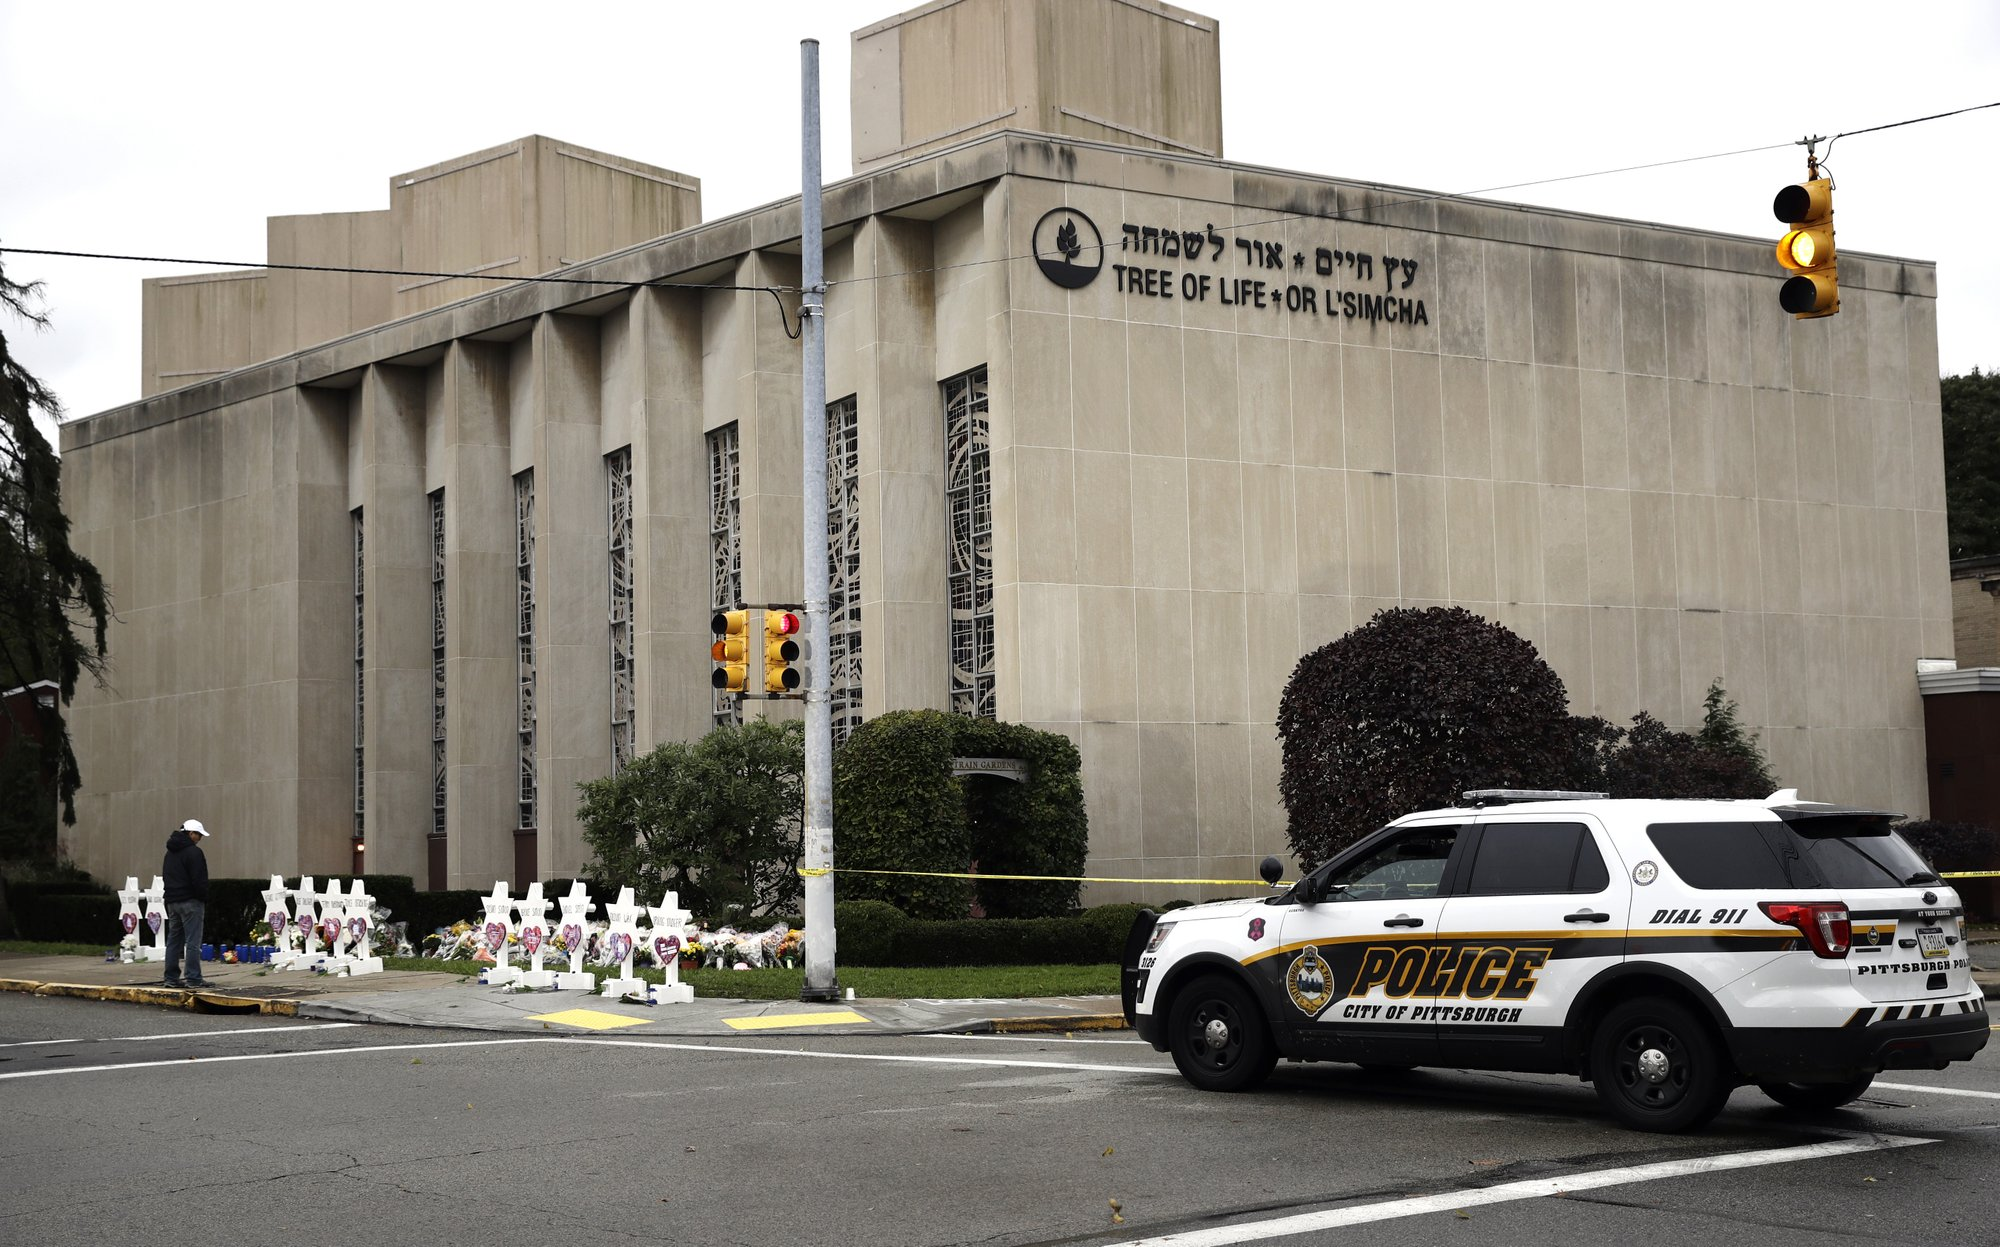 Synagogue massacre defendant appears in court in wheelchair